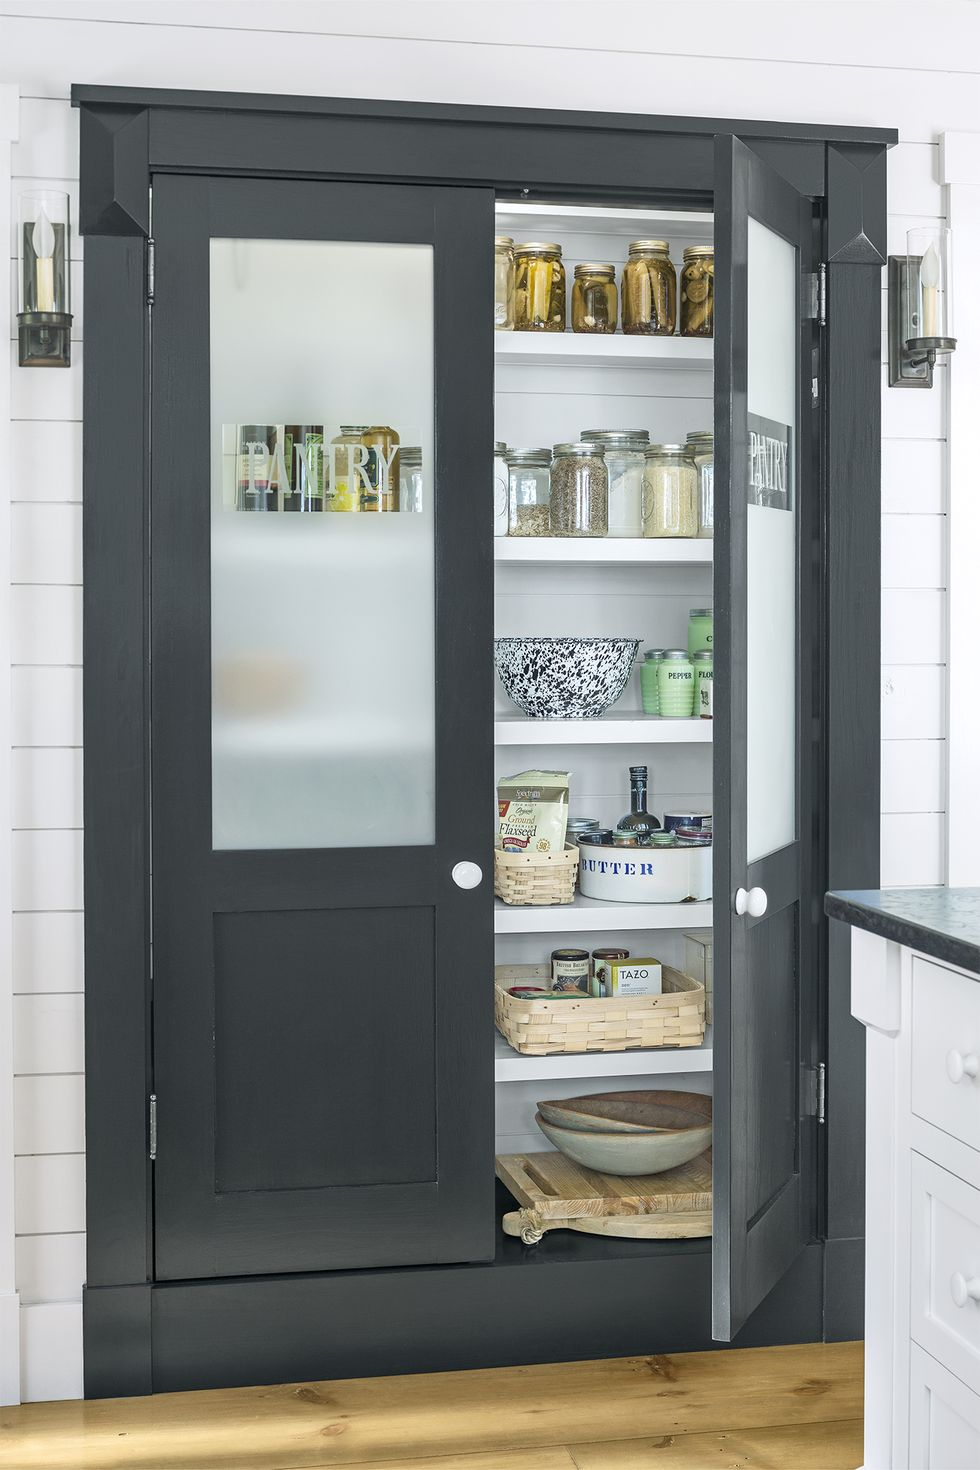 Pantry-organization-ideas-frosted-glass-1580410274